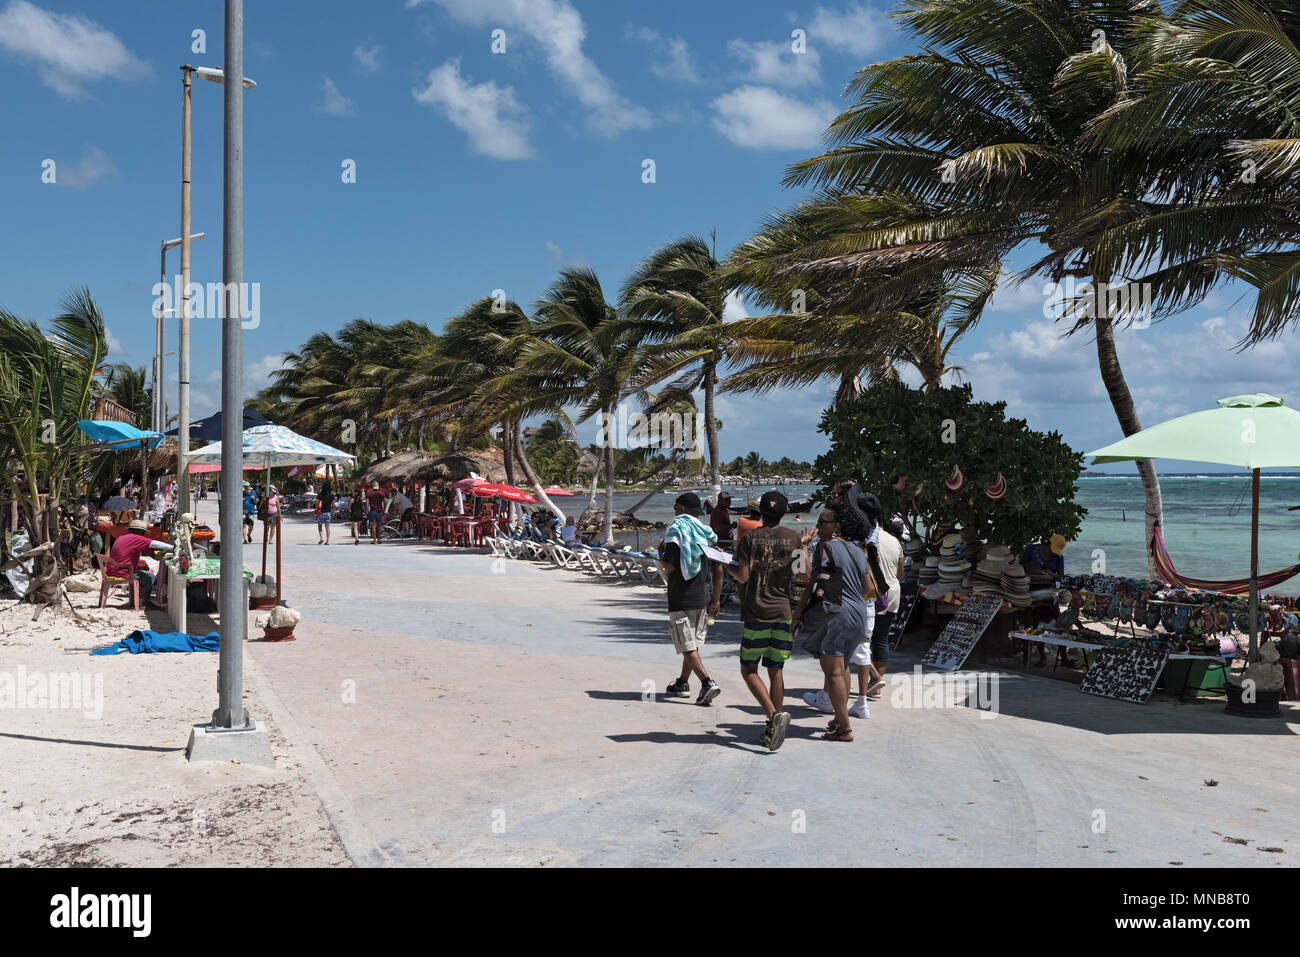 Beach With Souvenir Shops In Mahahual Quintana Roo Mexico Stock Photo Alamy